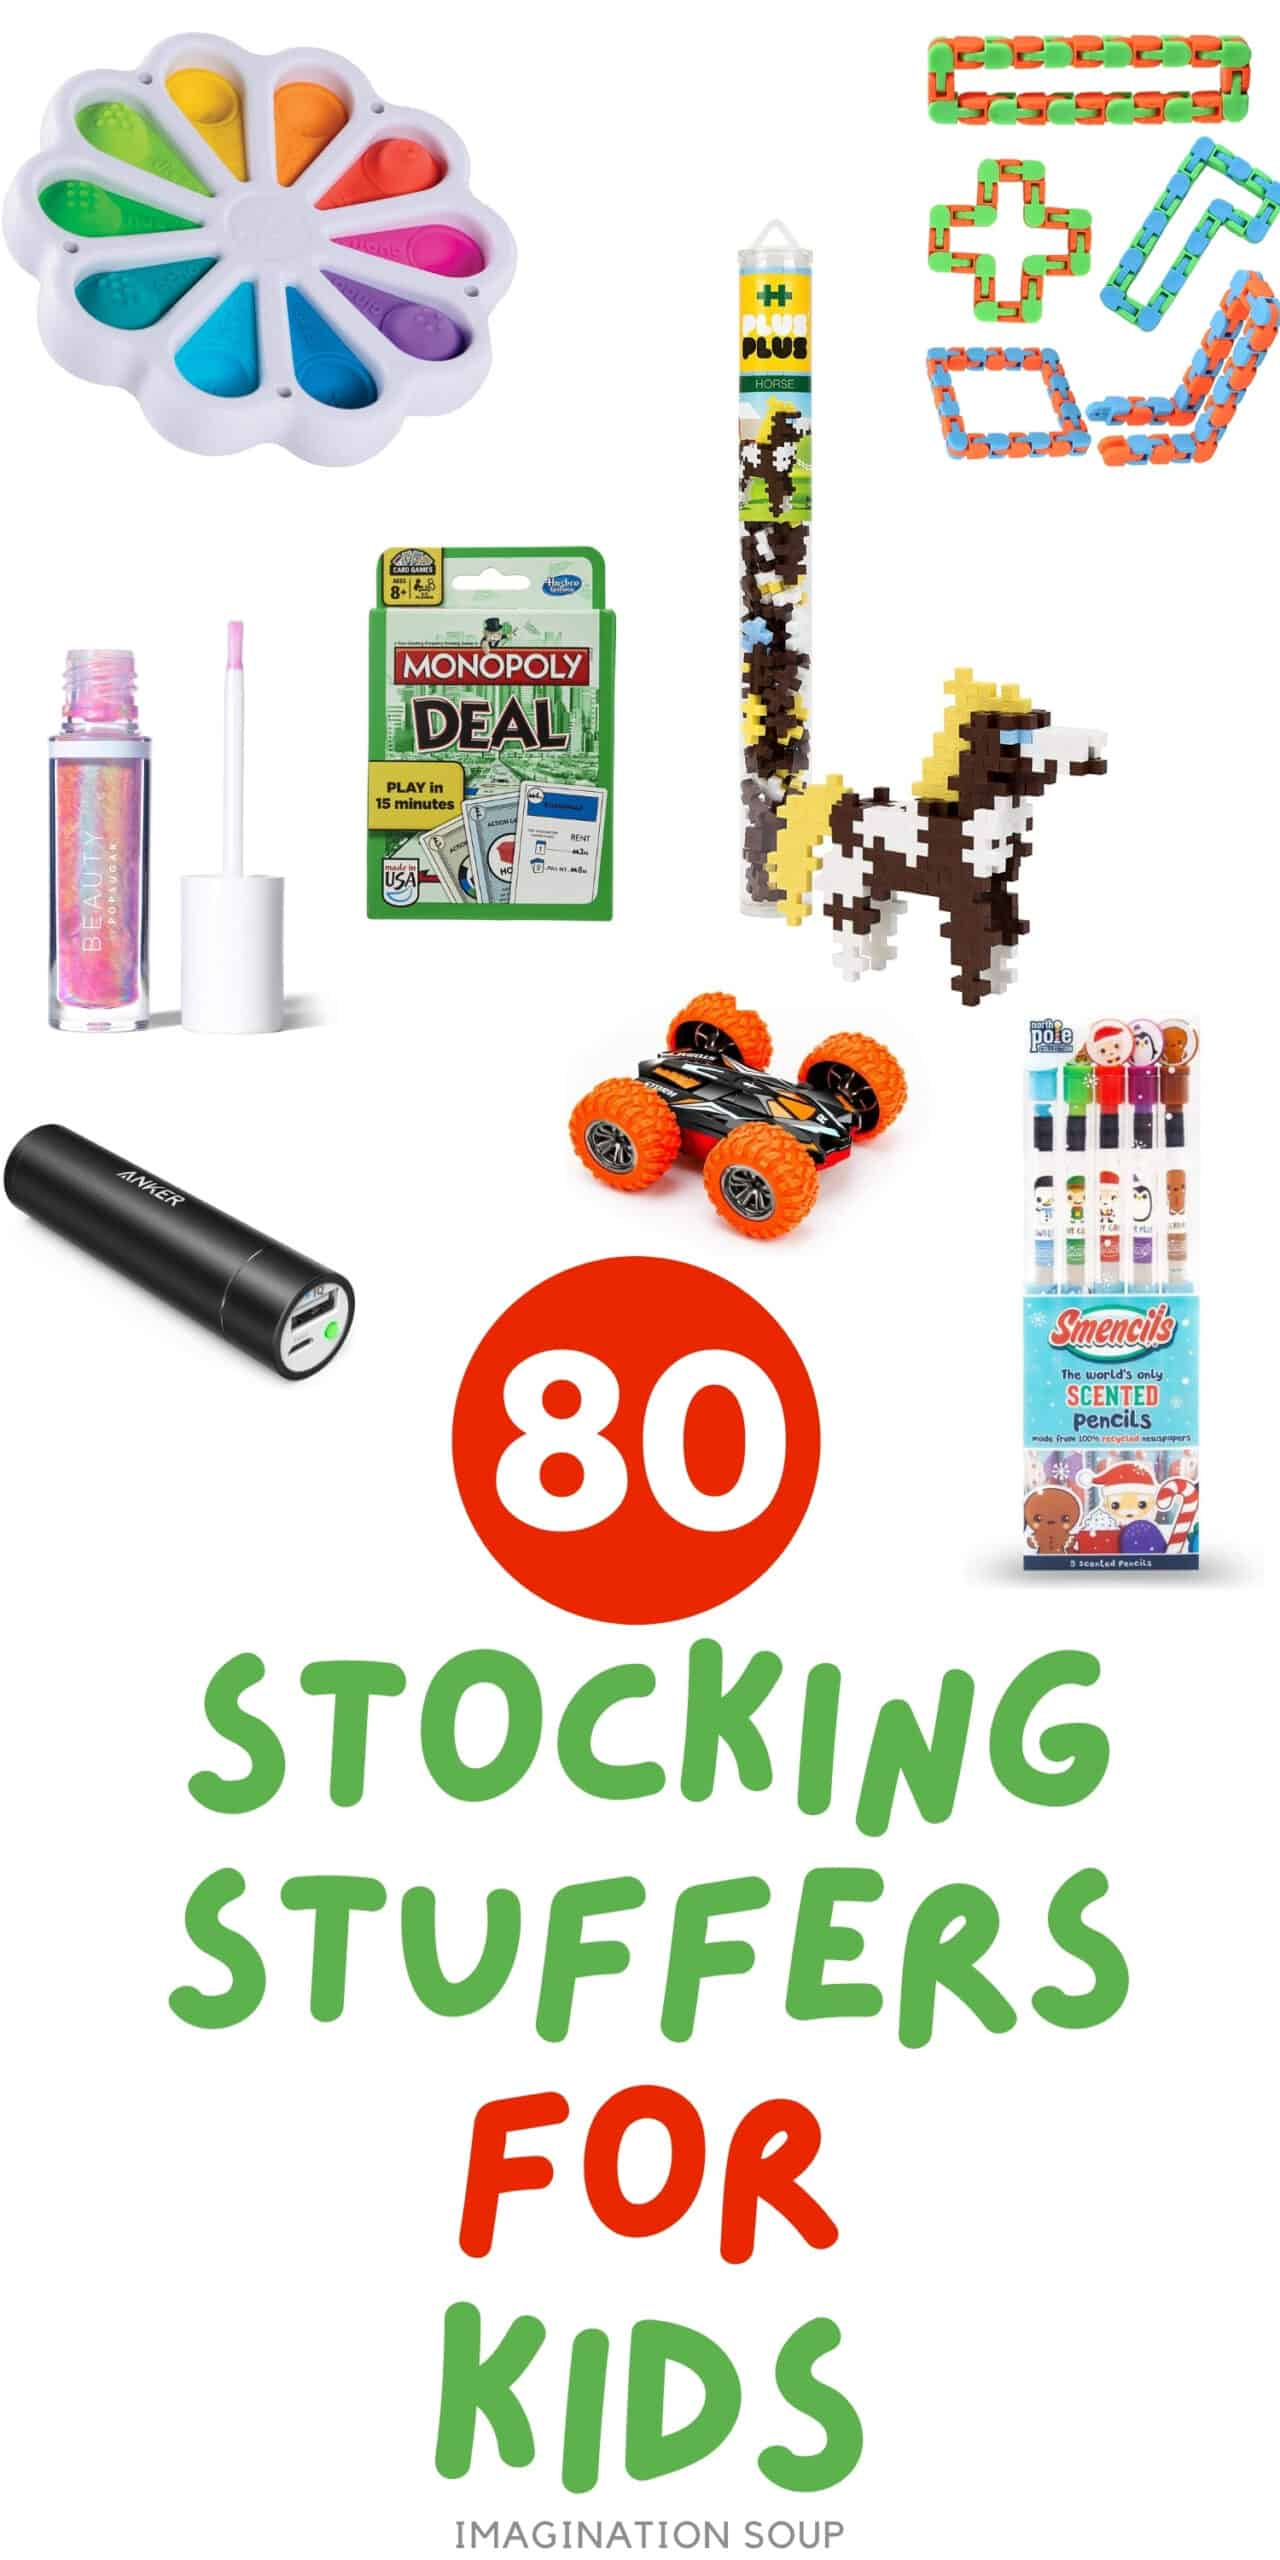 80+ stocking stuffer ideas for kids and teens